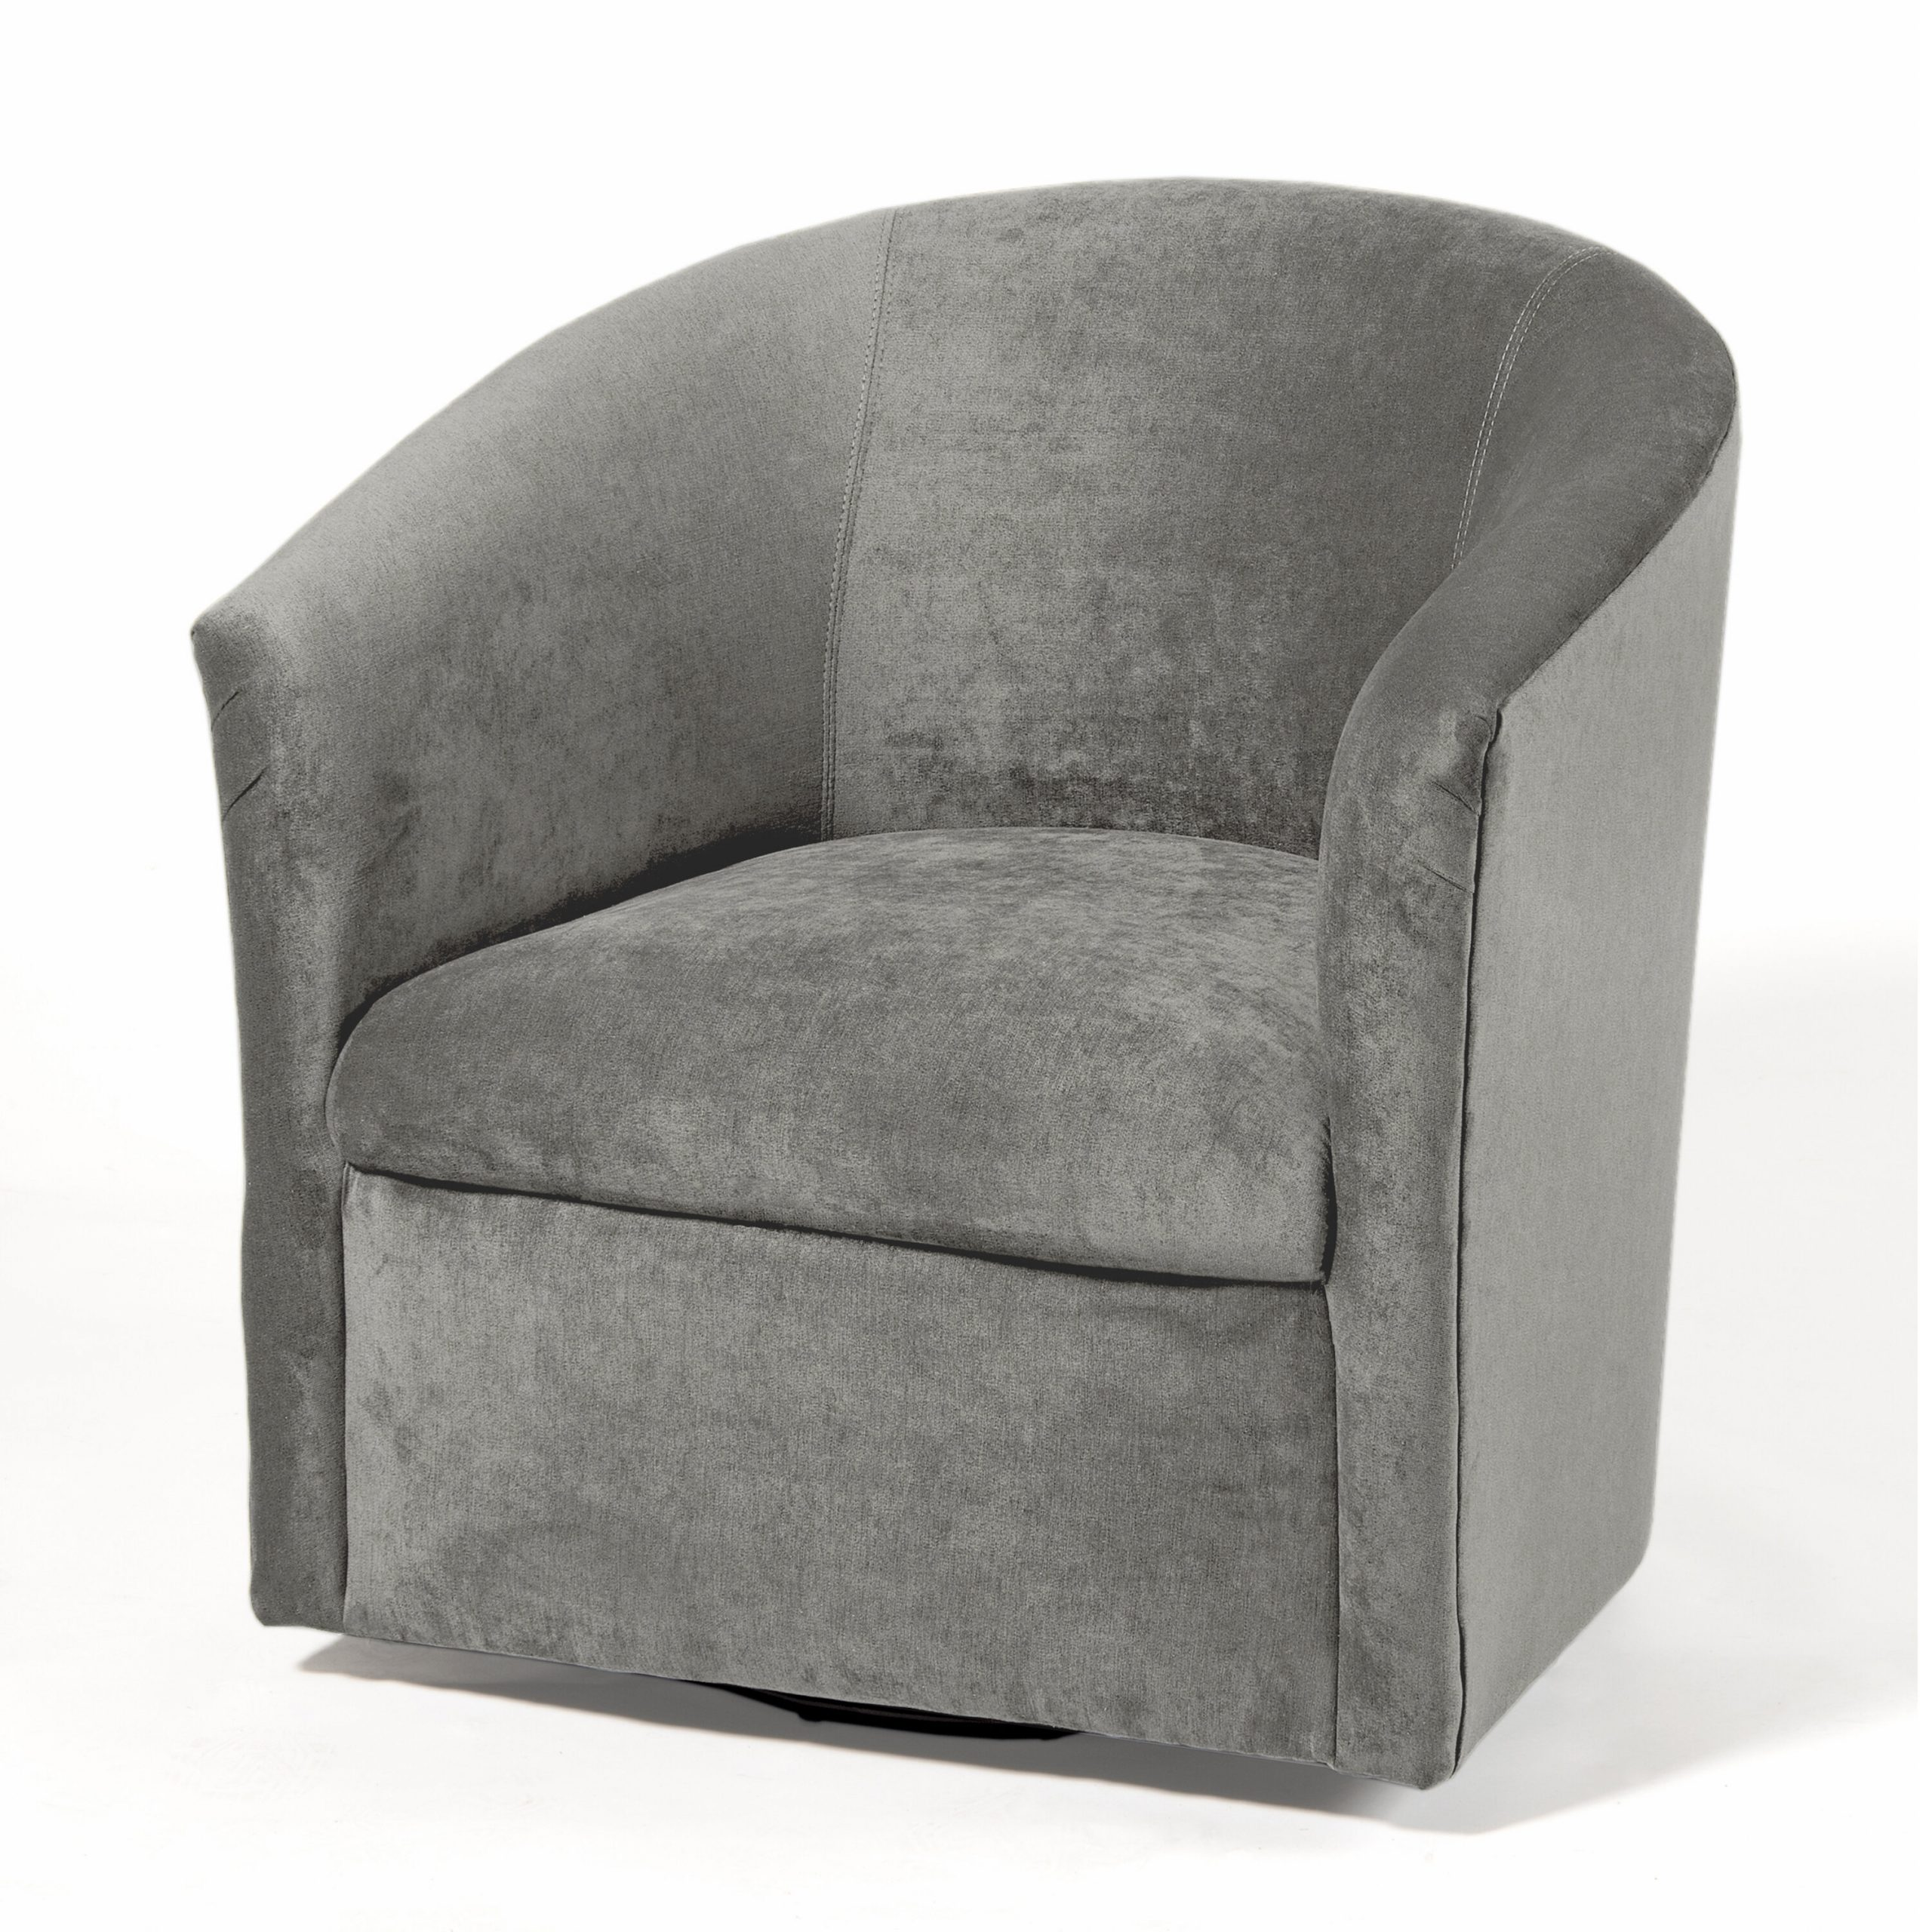 Barrel Swivel Accent Chairs You'Ll Love In 2021 | Wayfair Inside Dorcaster Barrel Chairs (View 4 of 15)